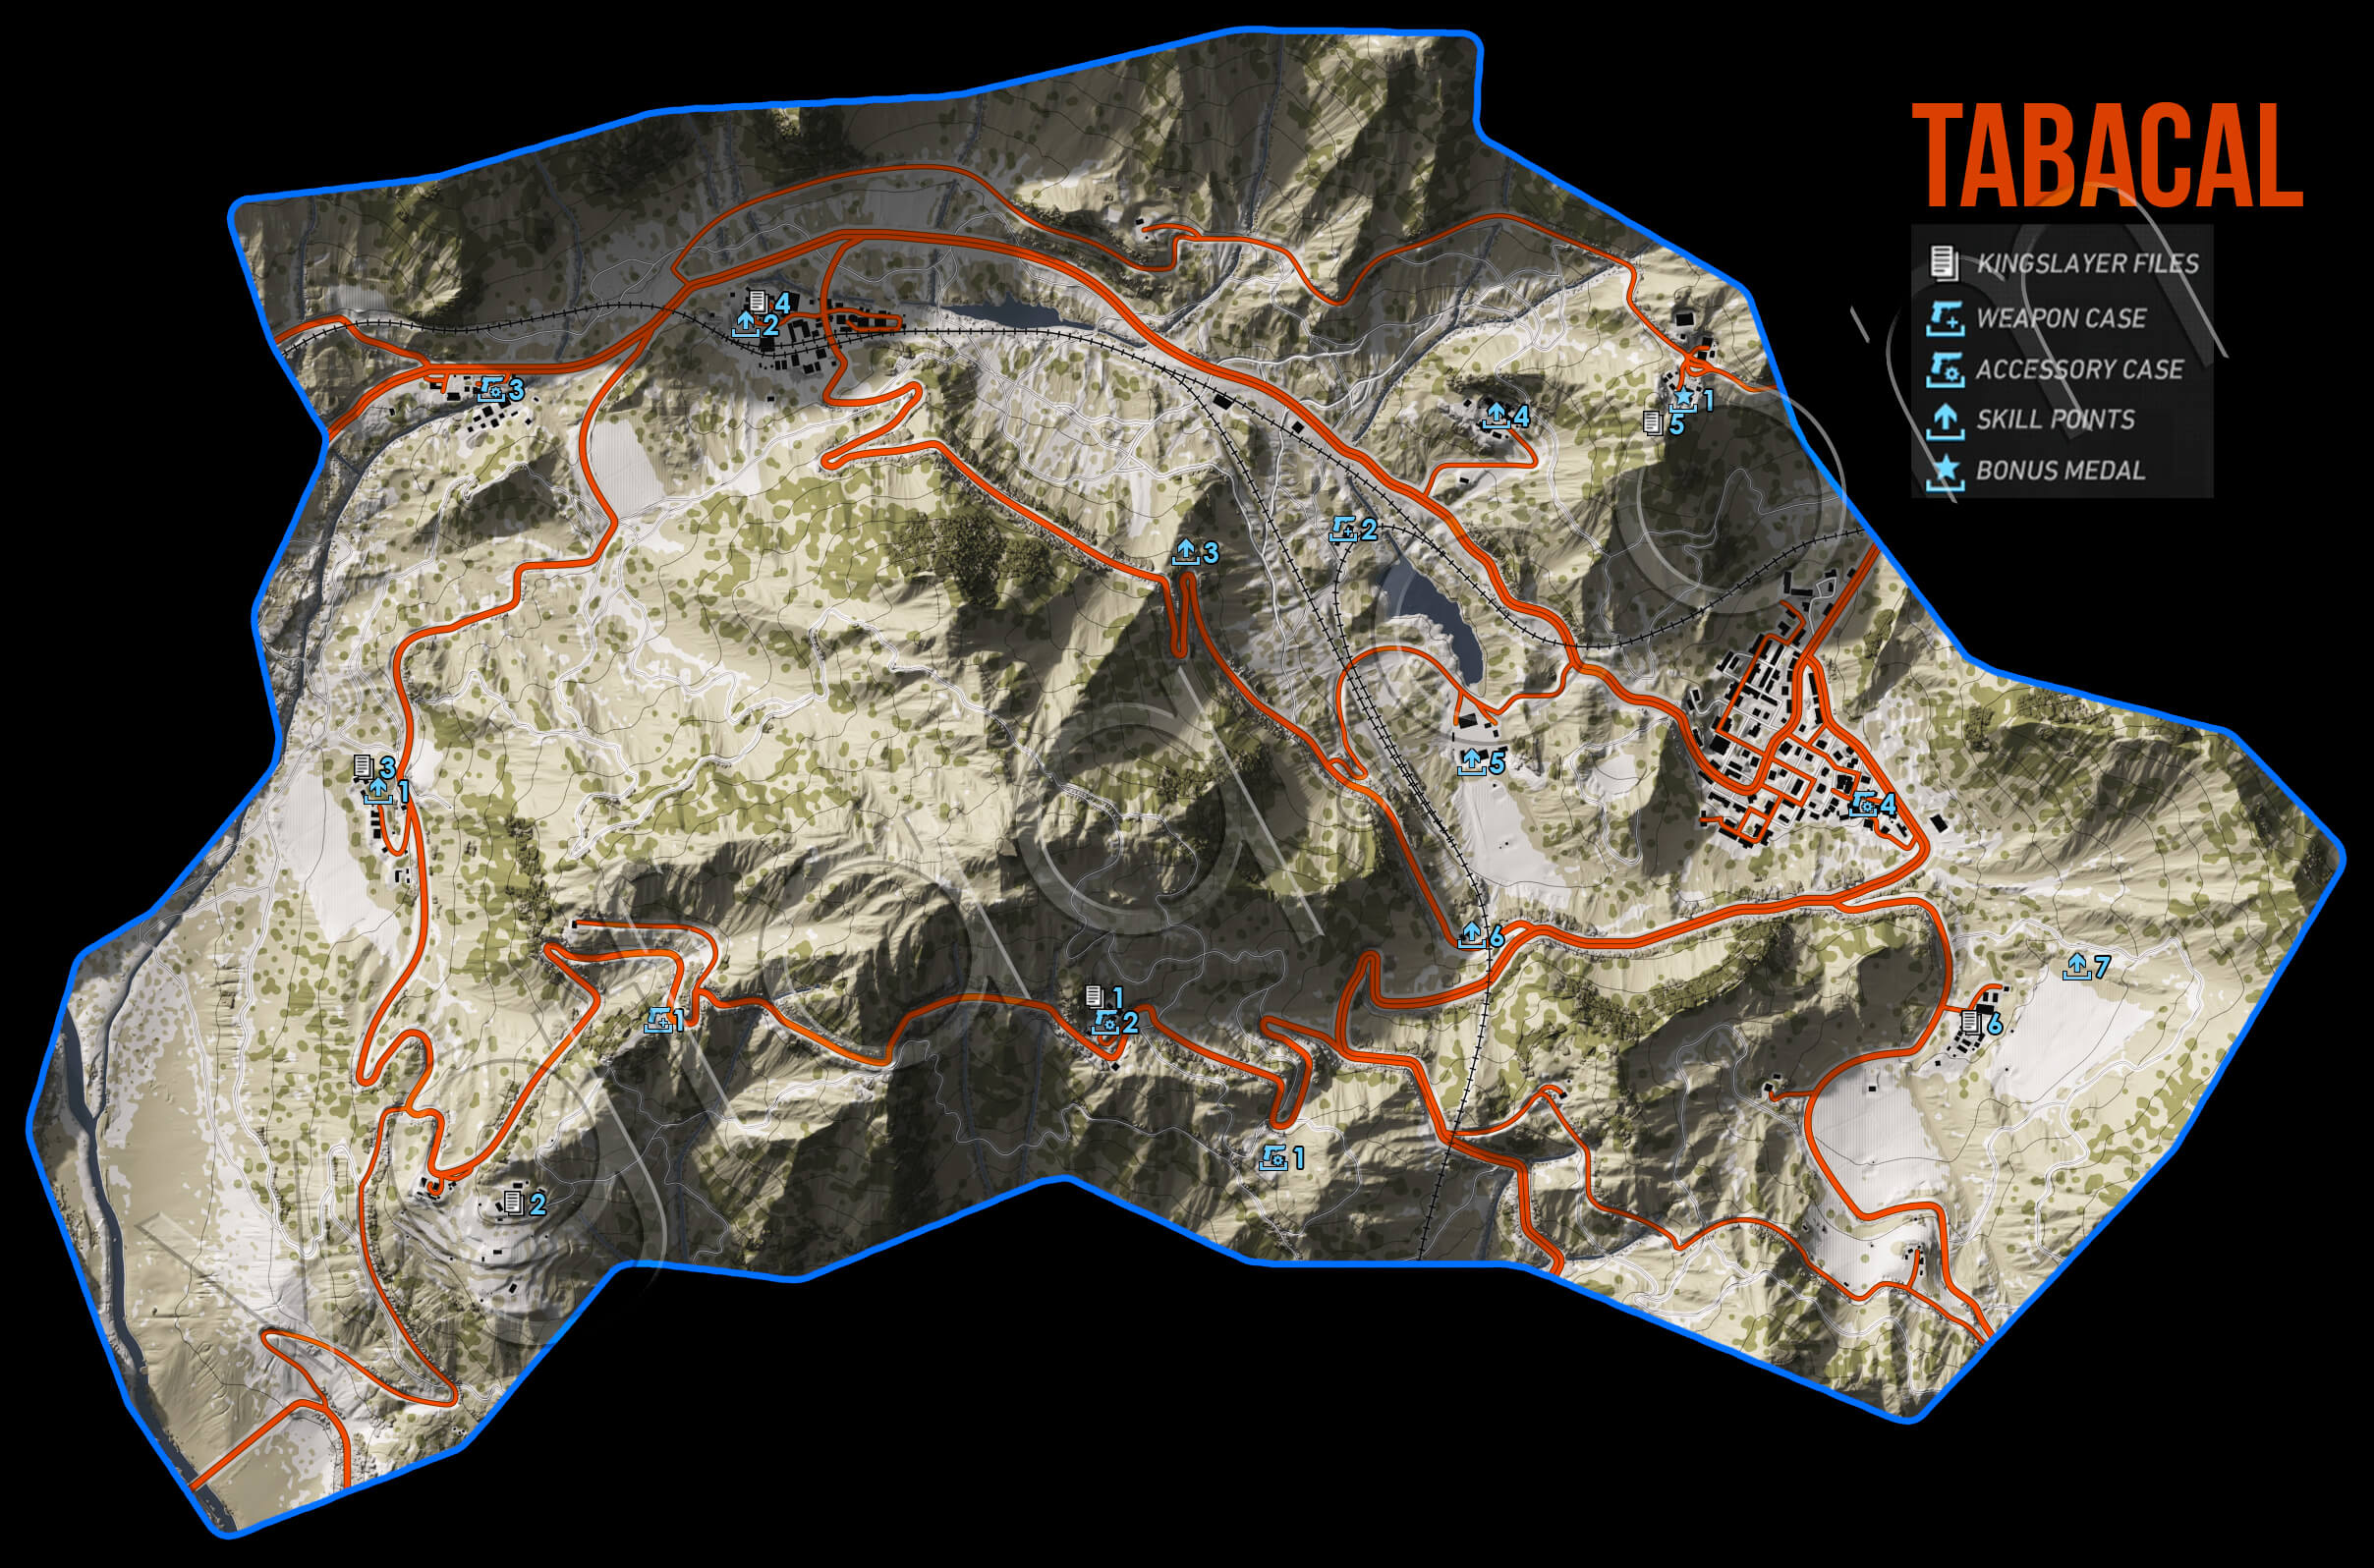 Ghost Recon Wildlands Tabacal Collectables Map